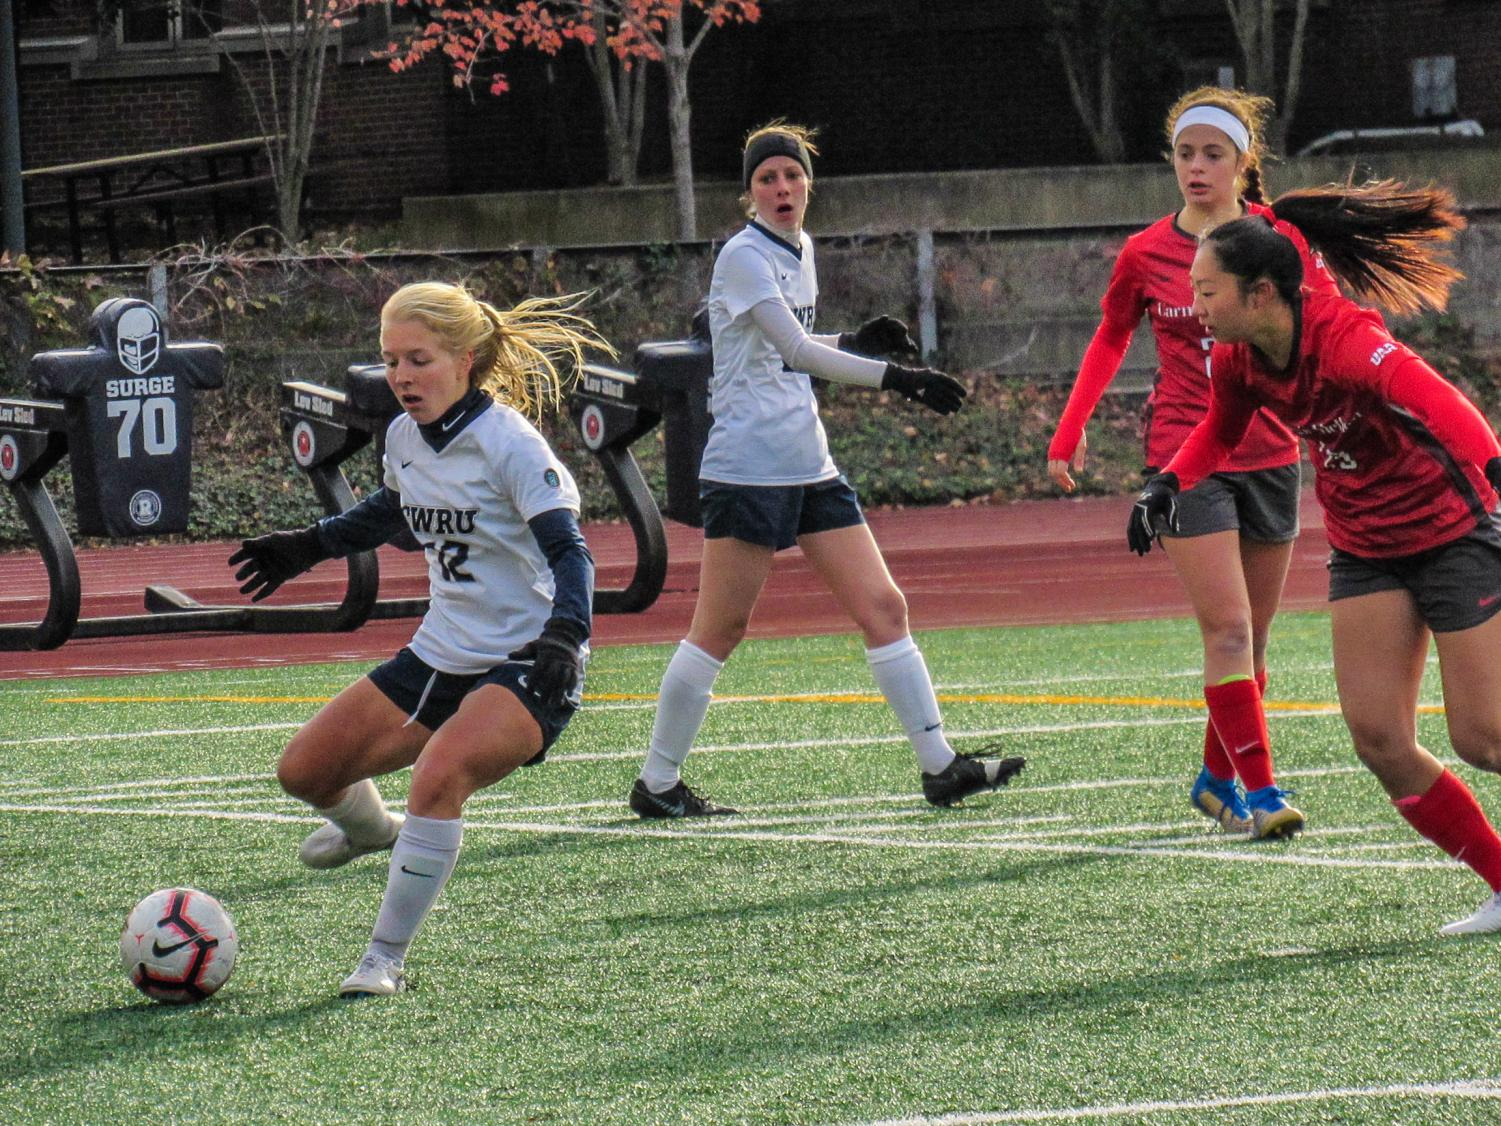 Despite a loss against Carnegie Mellon, CWRU women's soccer team qualifed for the second NCAA tournament in the program's history.